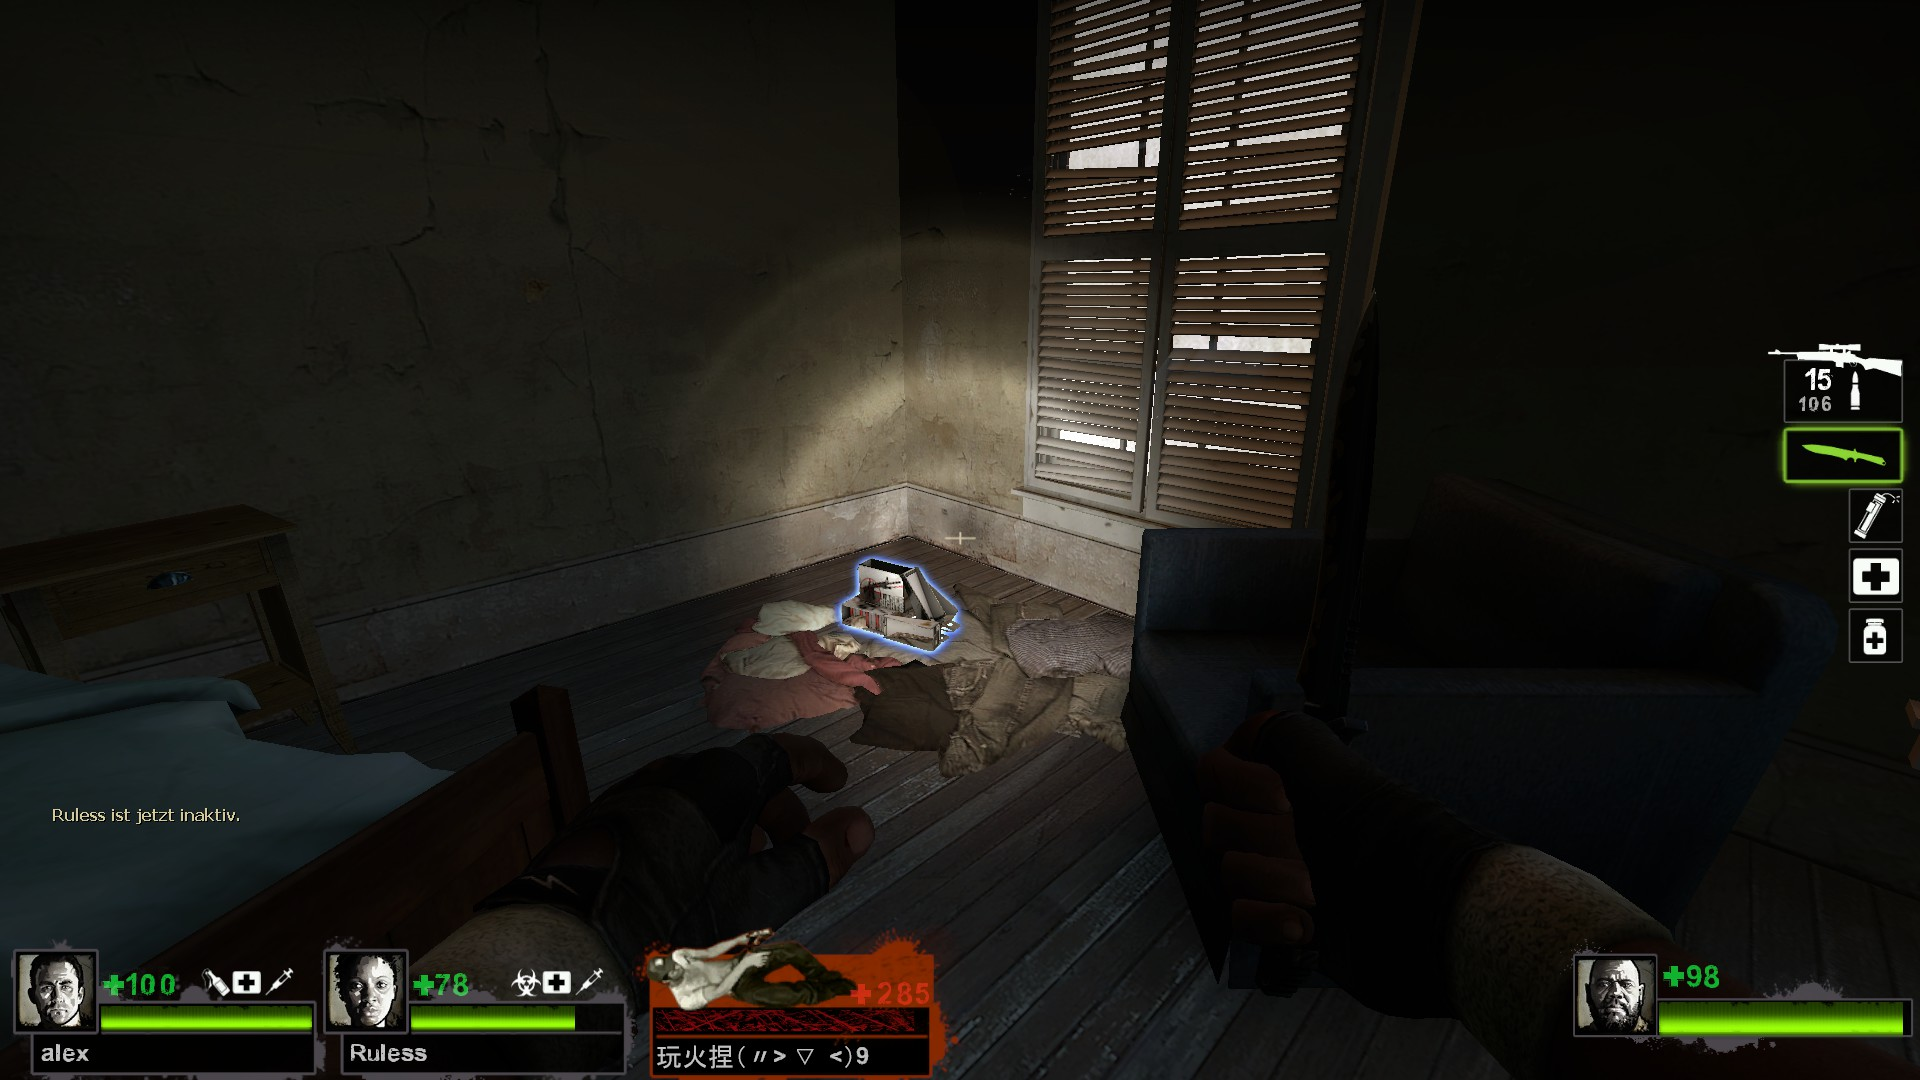 Left 4 Dead 2 - Detailed Guide for All Laser Sight Locations in Game - Map Guide - Potential spots, L4D2 maps - 92B254E